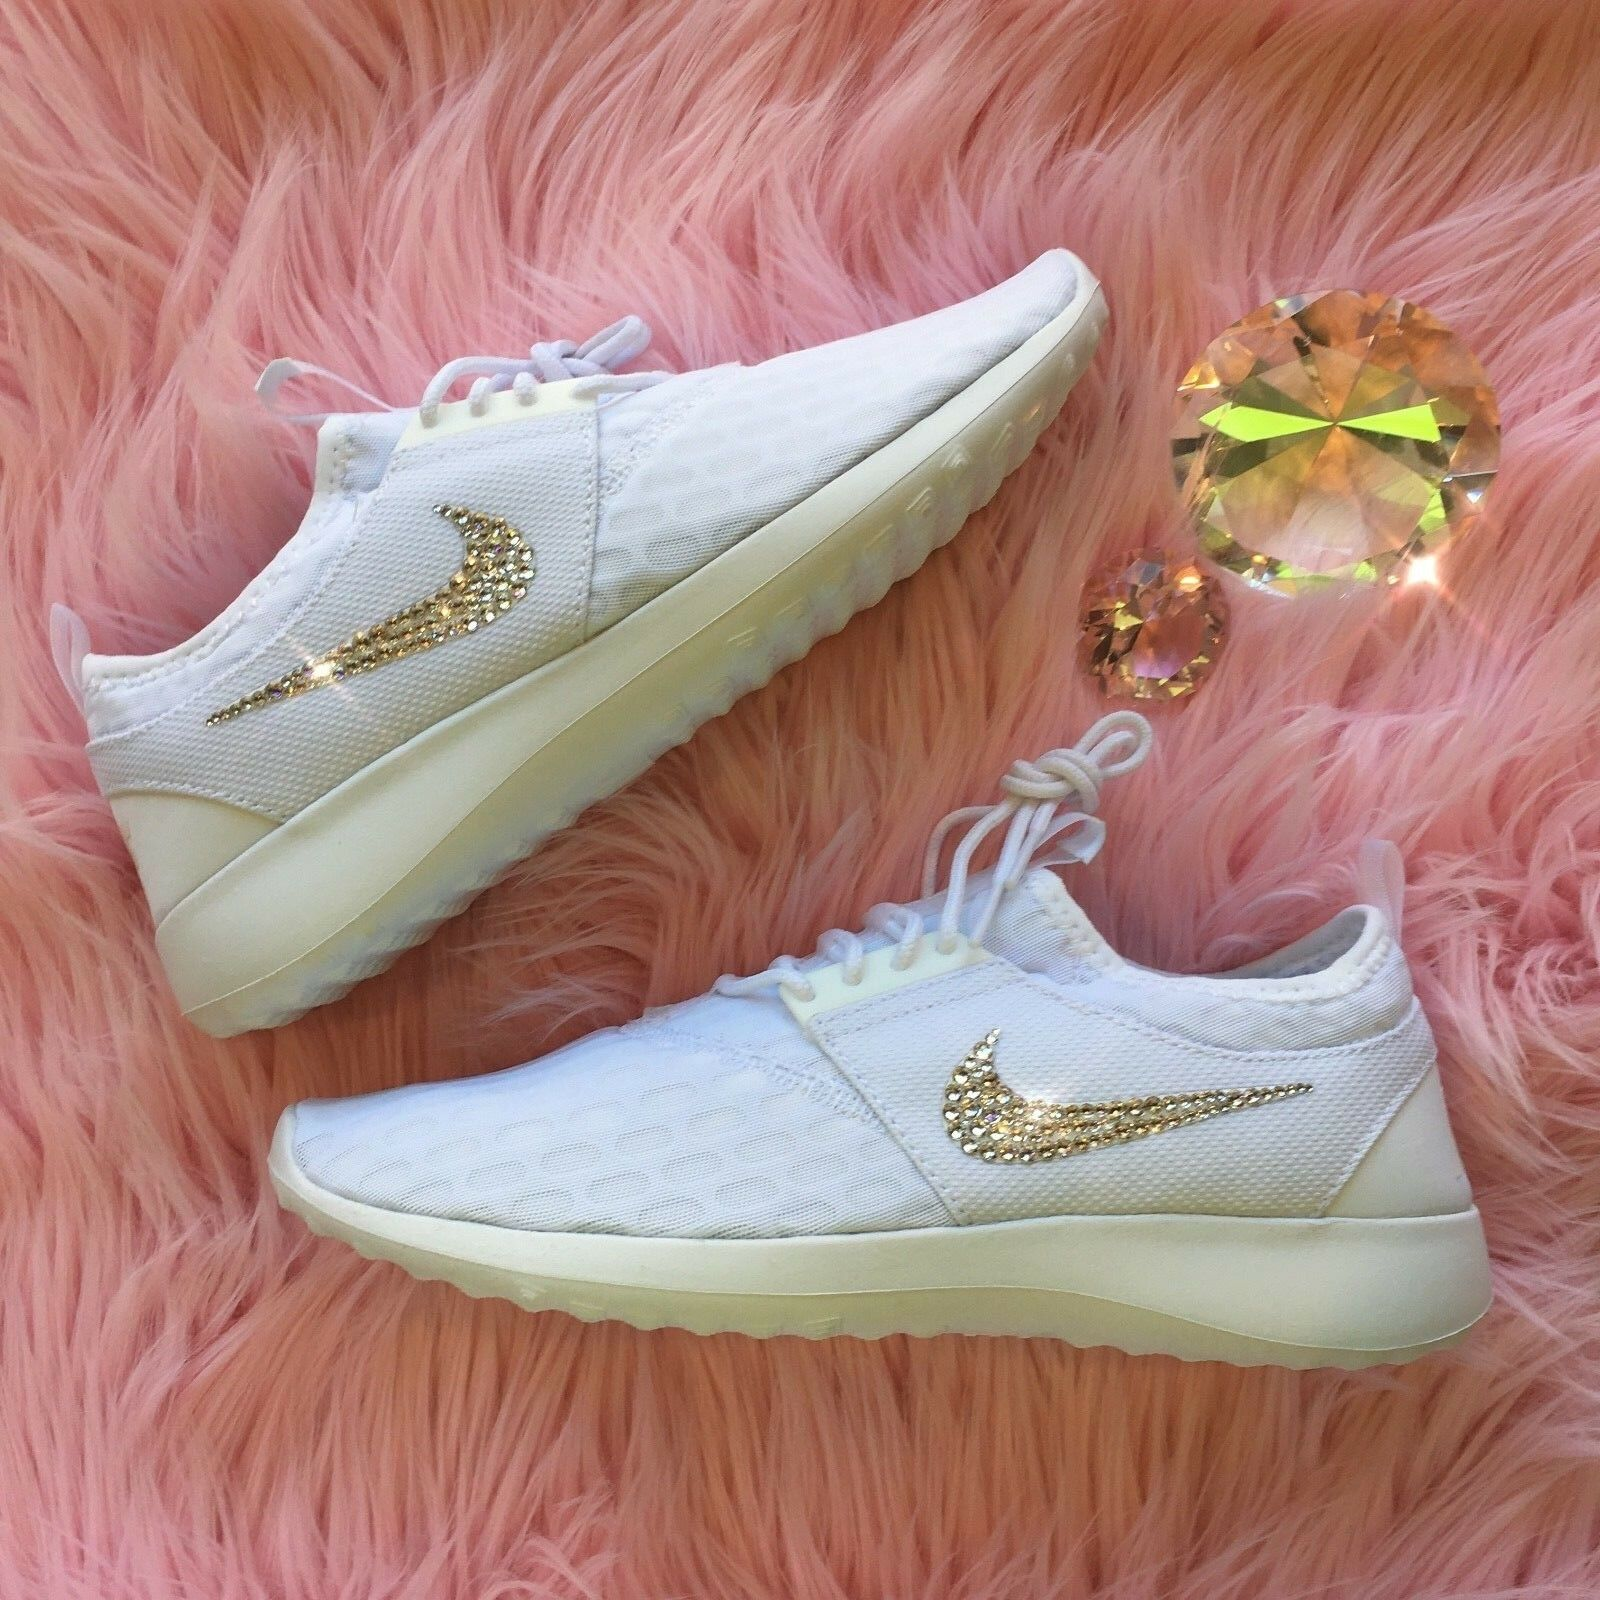 Bling Nike Juvenate Shoes w/ Swarovski Crystals ALL WHITE w/ Bedazzled Swooshes